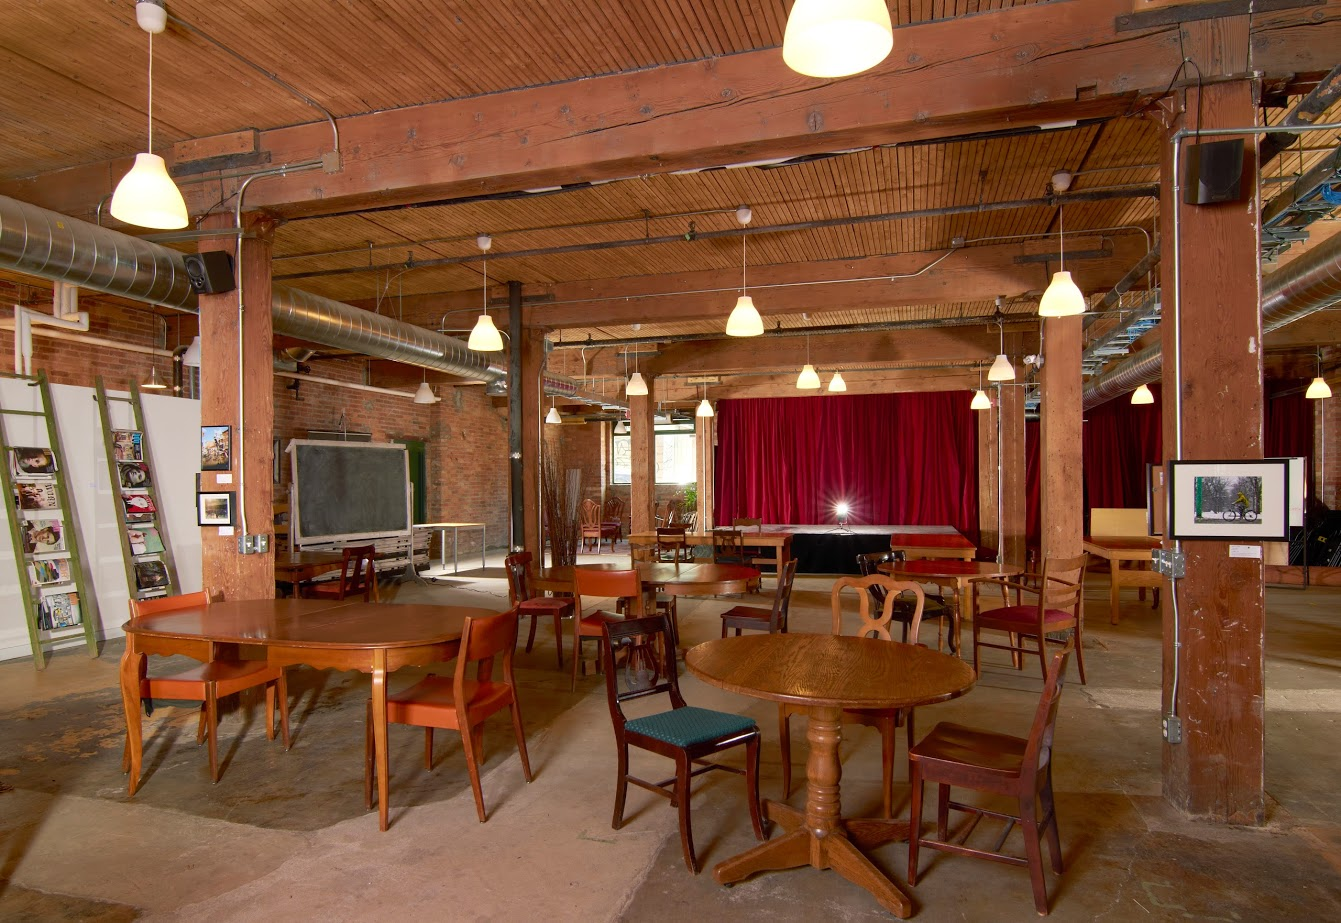 centre-for-social-innovation-annex---shared-workspace_6928787773_o